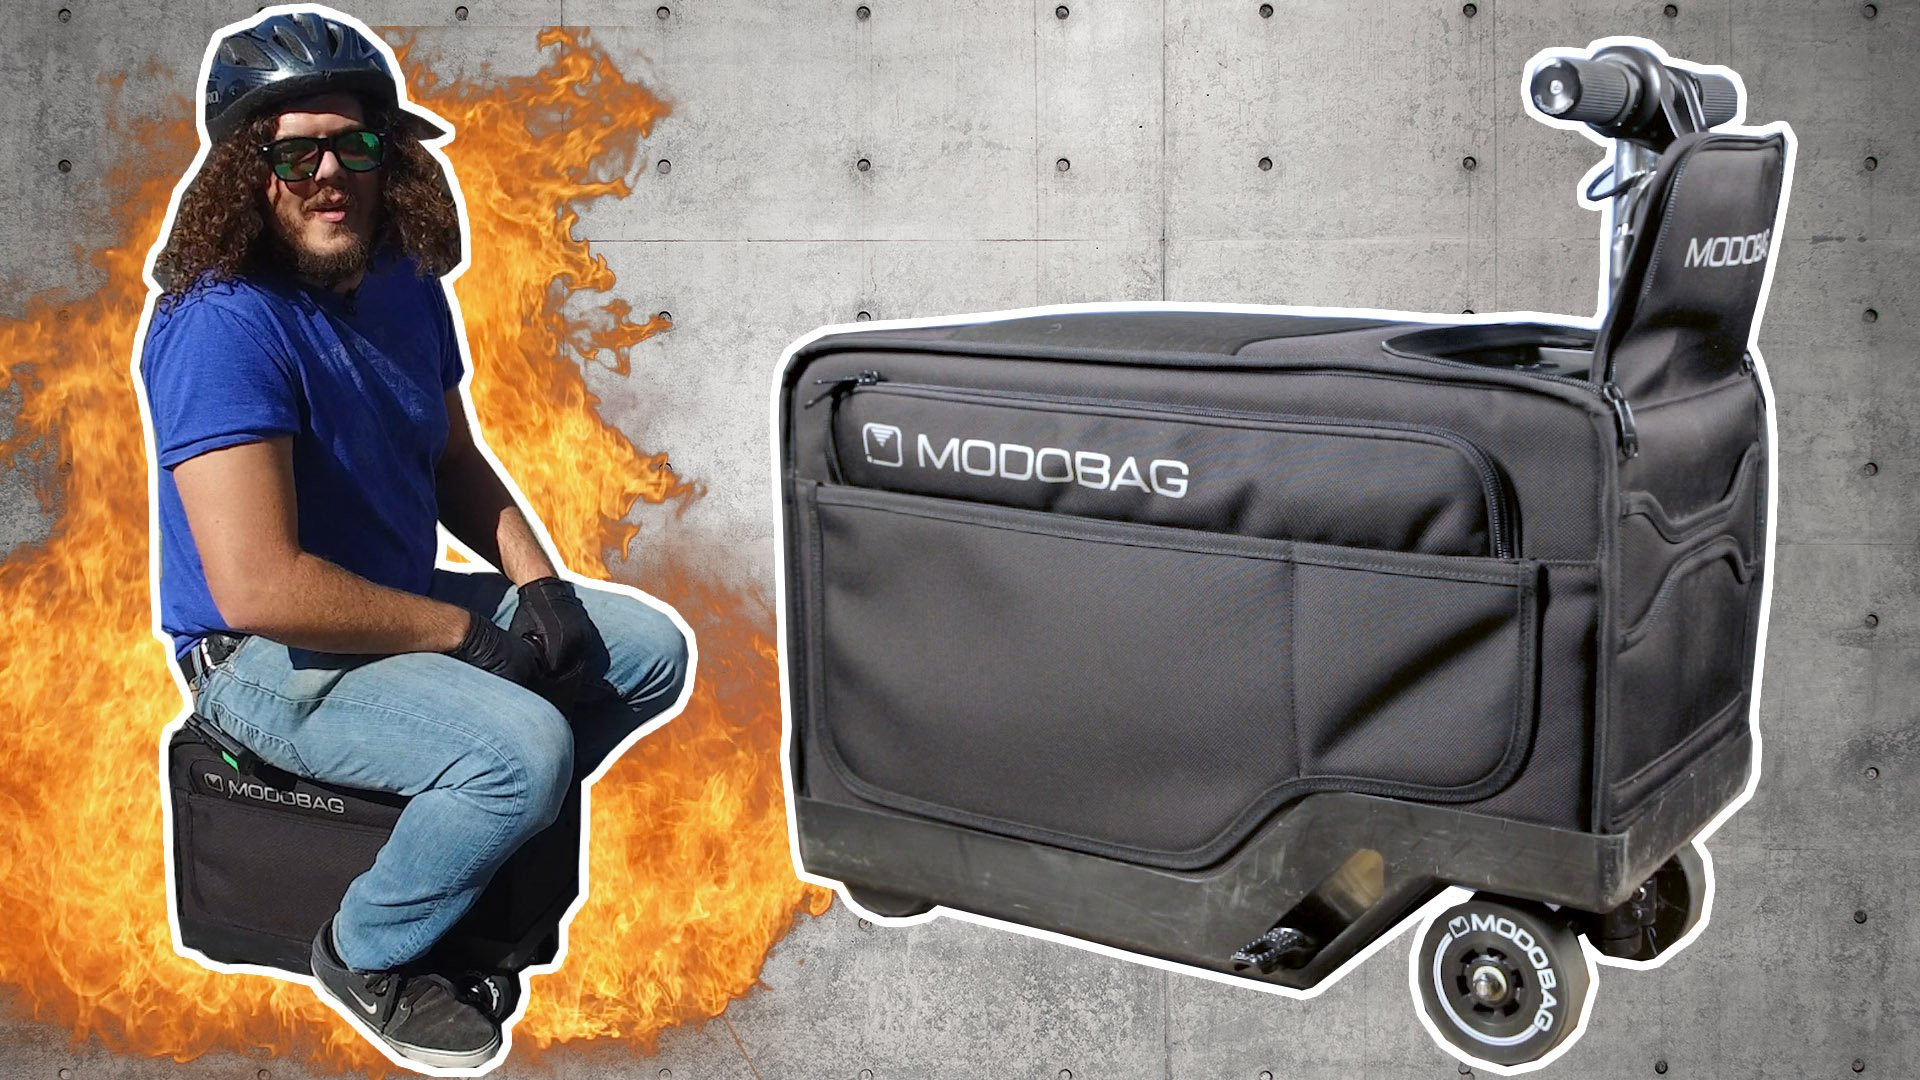 The Modobag suitcase is my new hot ride https://t.co/PKMtZoJHuK https://t.co/slpGfnZp8y